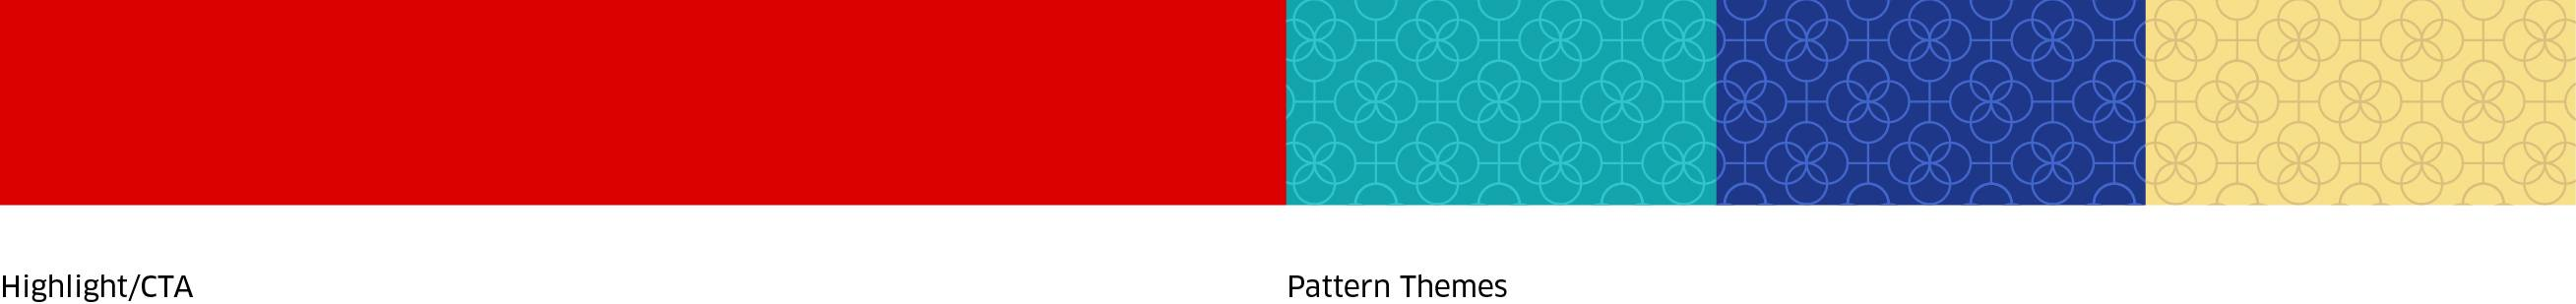 Color-Palettes-Patterns_Local_Newsroom_China